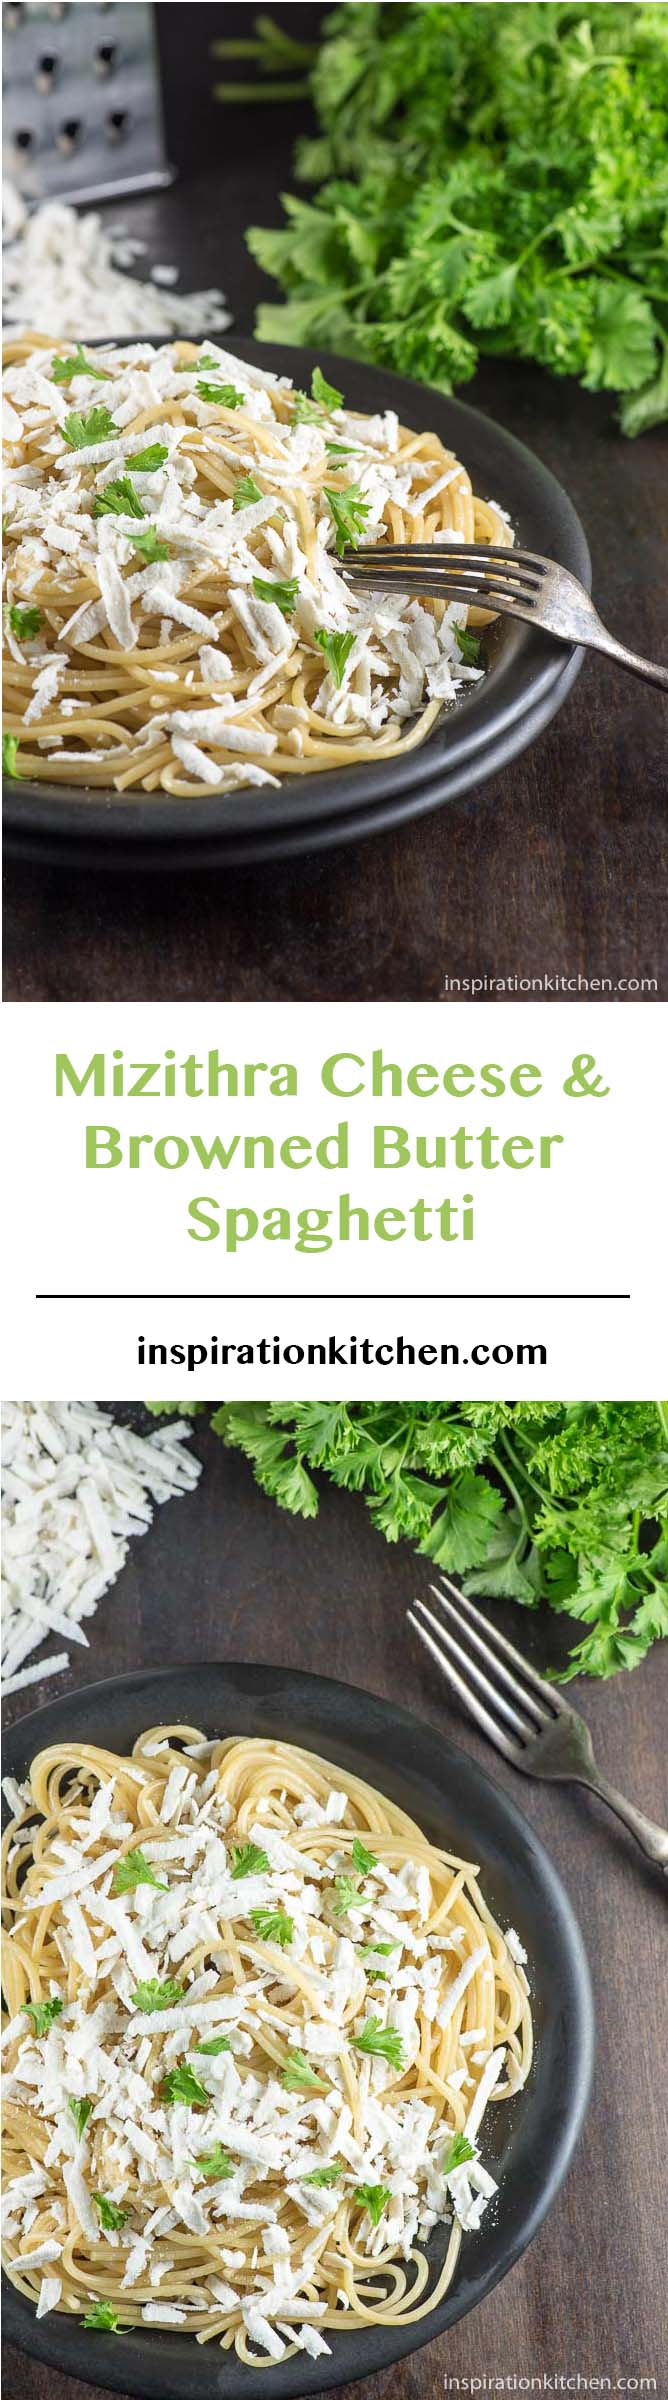 Mizithra Cheese and Browned Butter Spaghetti - inspirationkitchen.com